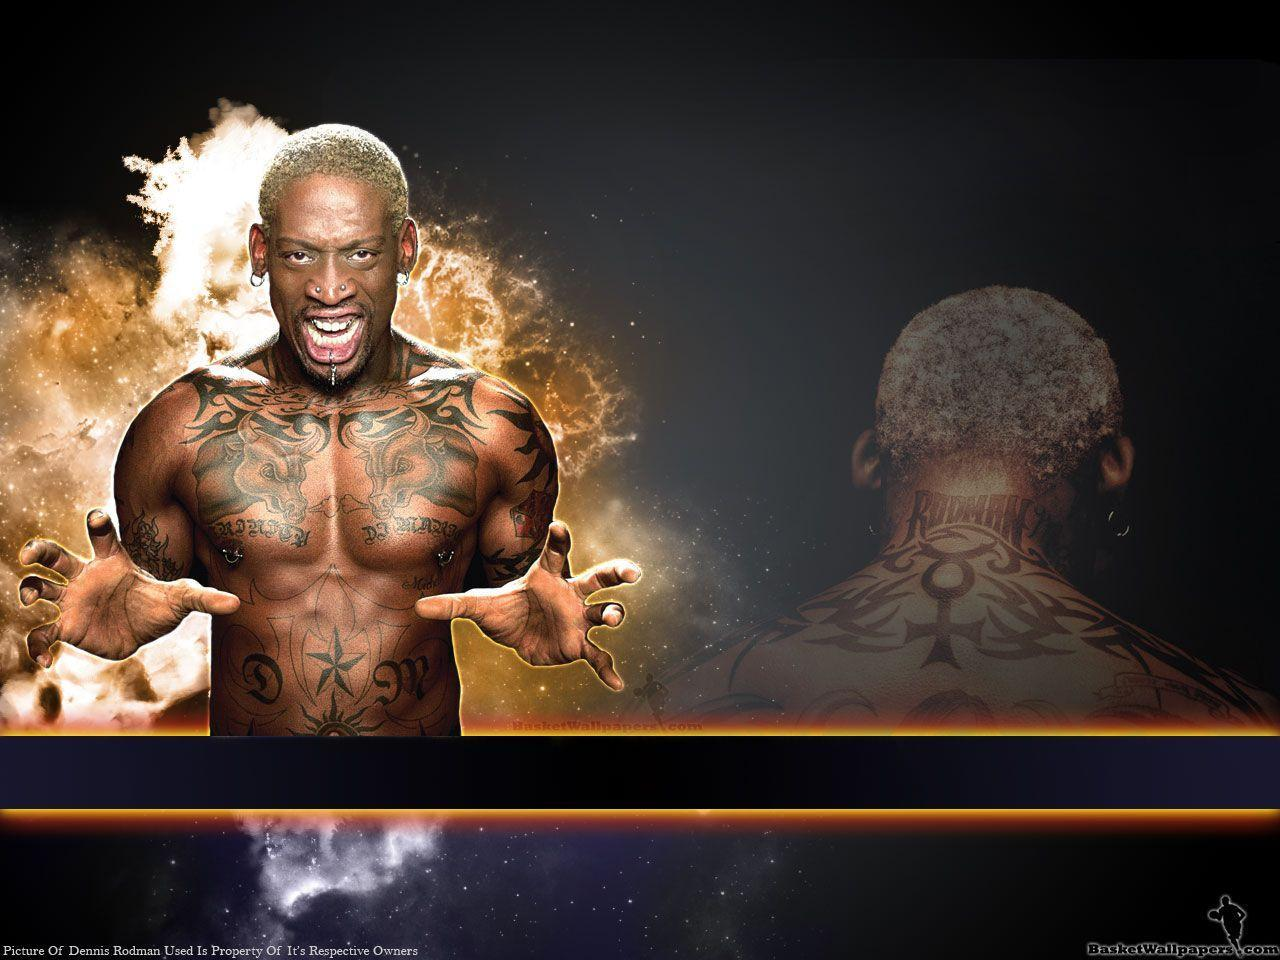 Dennis Rodman Wallpapers - Wallpaper Cave